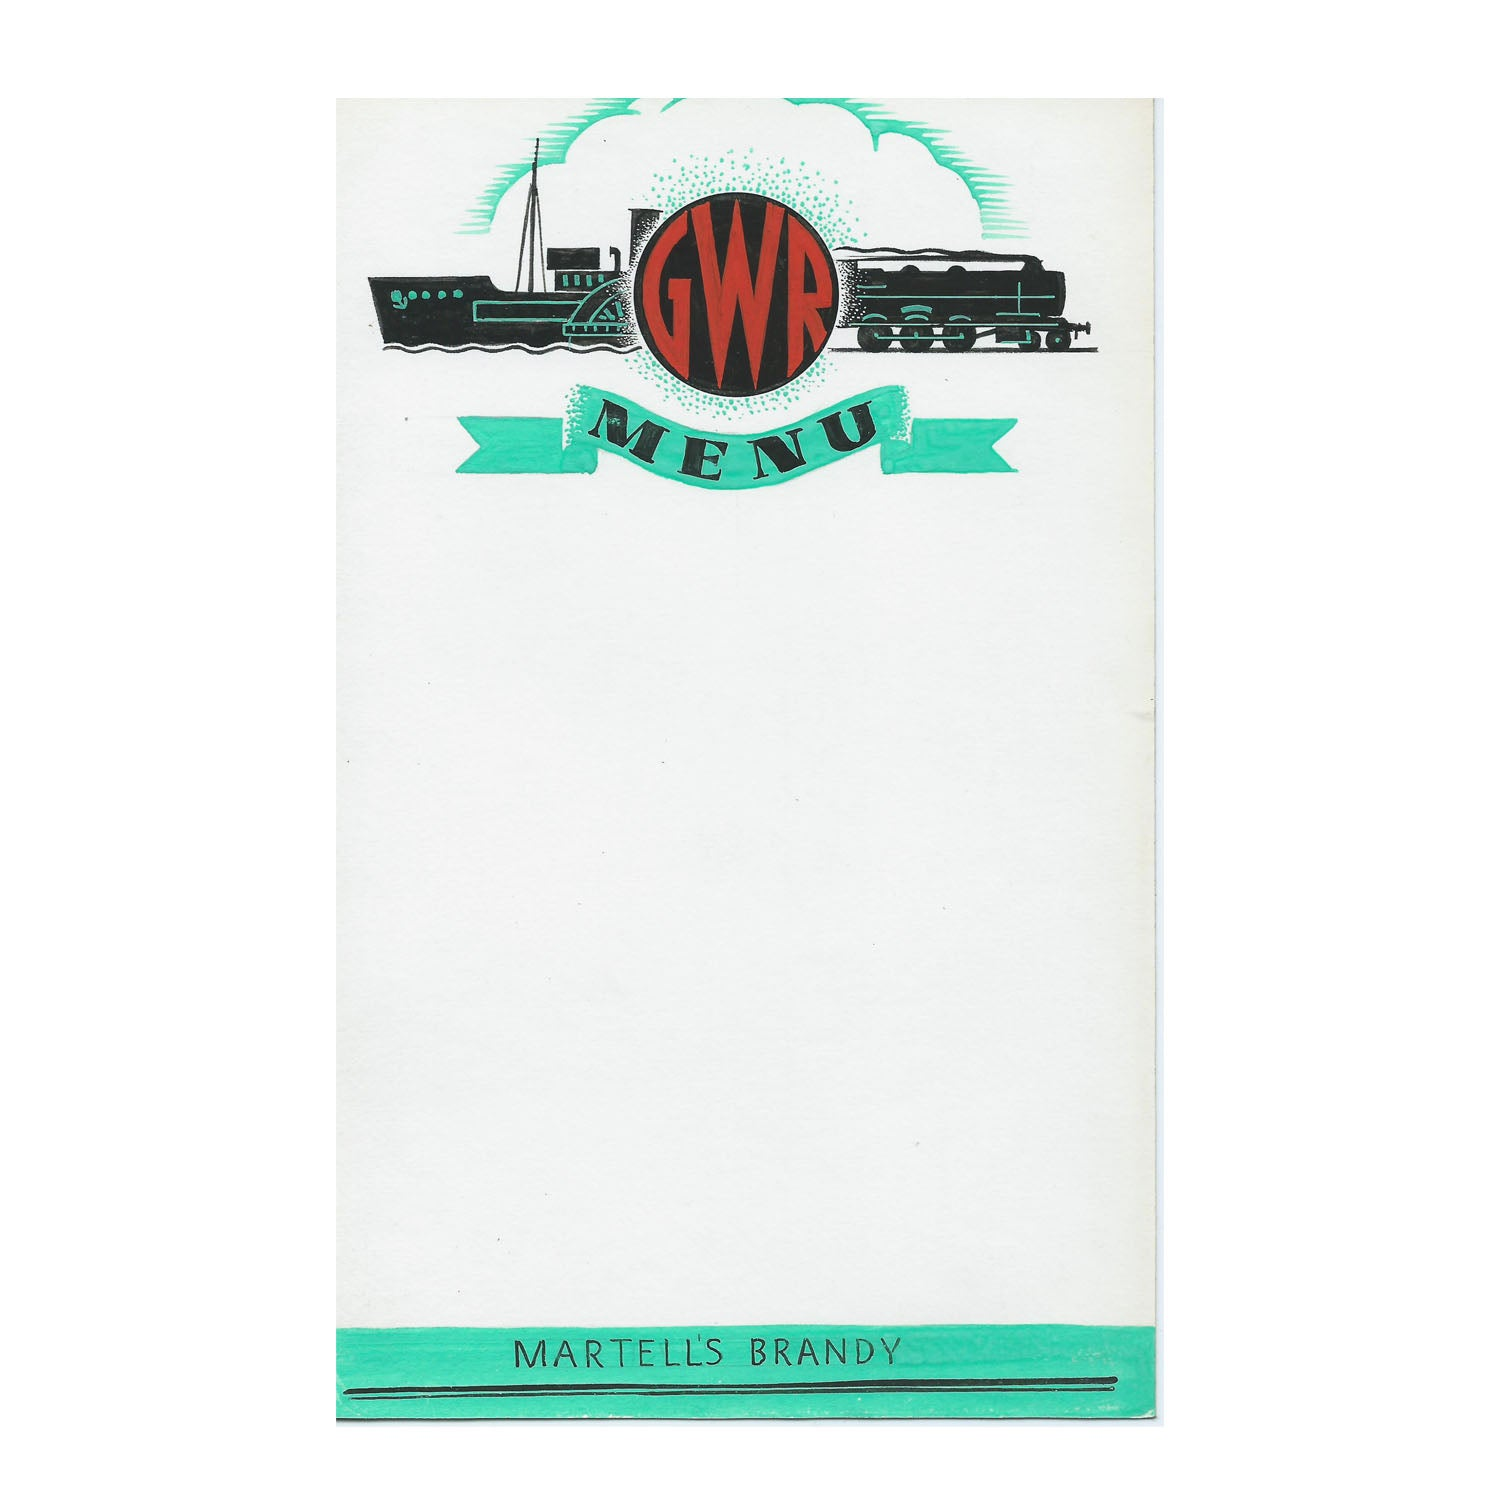 Menu artwork, GWR